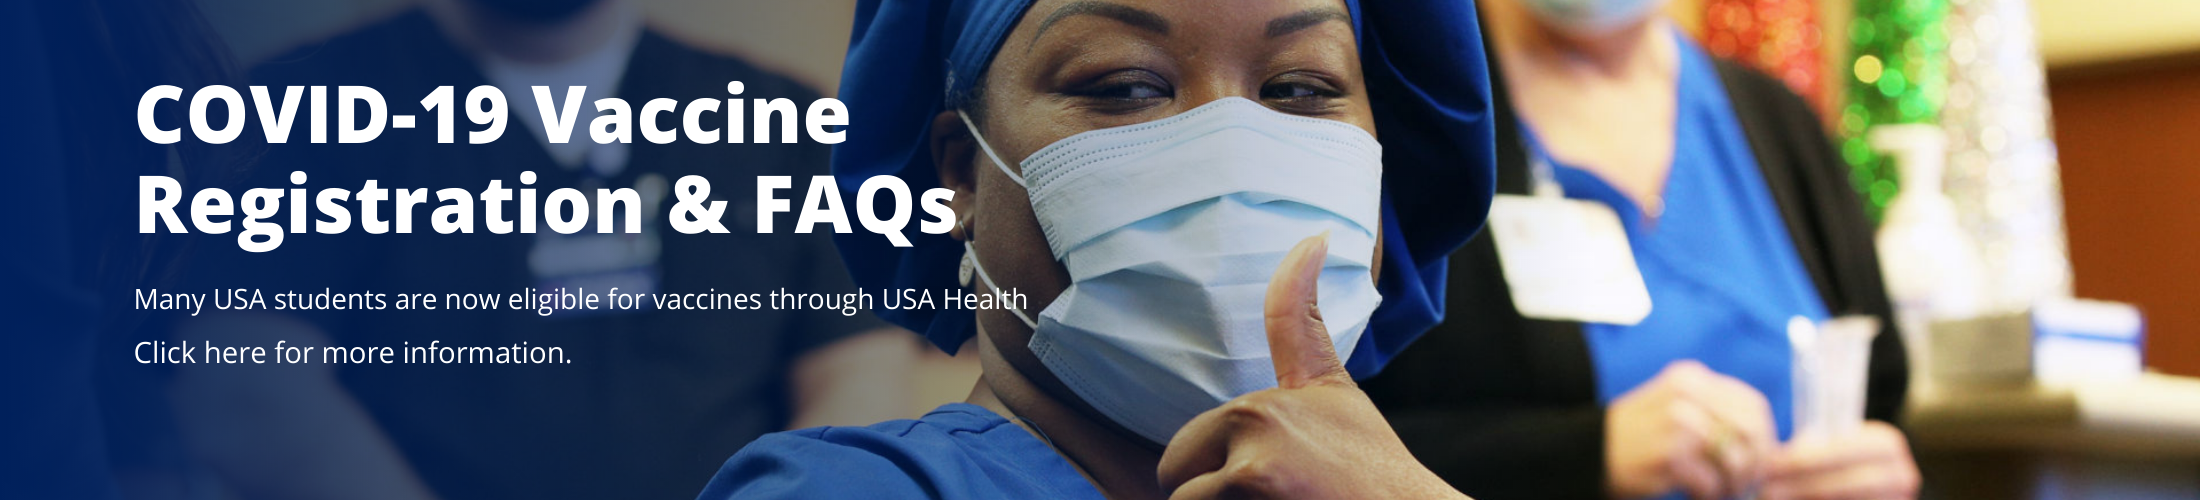 COVID-19 Vaccine Registration & FAQs Many USA students are now eligible for vaccines through USA Health. Click here for more information.